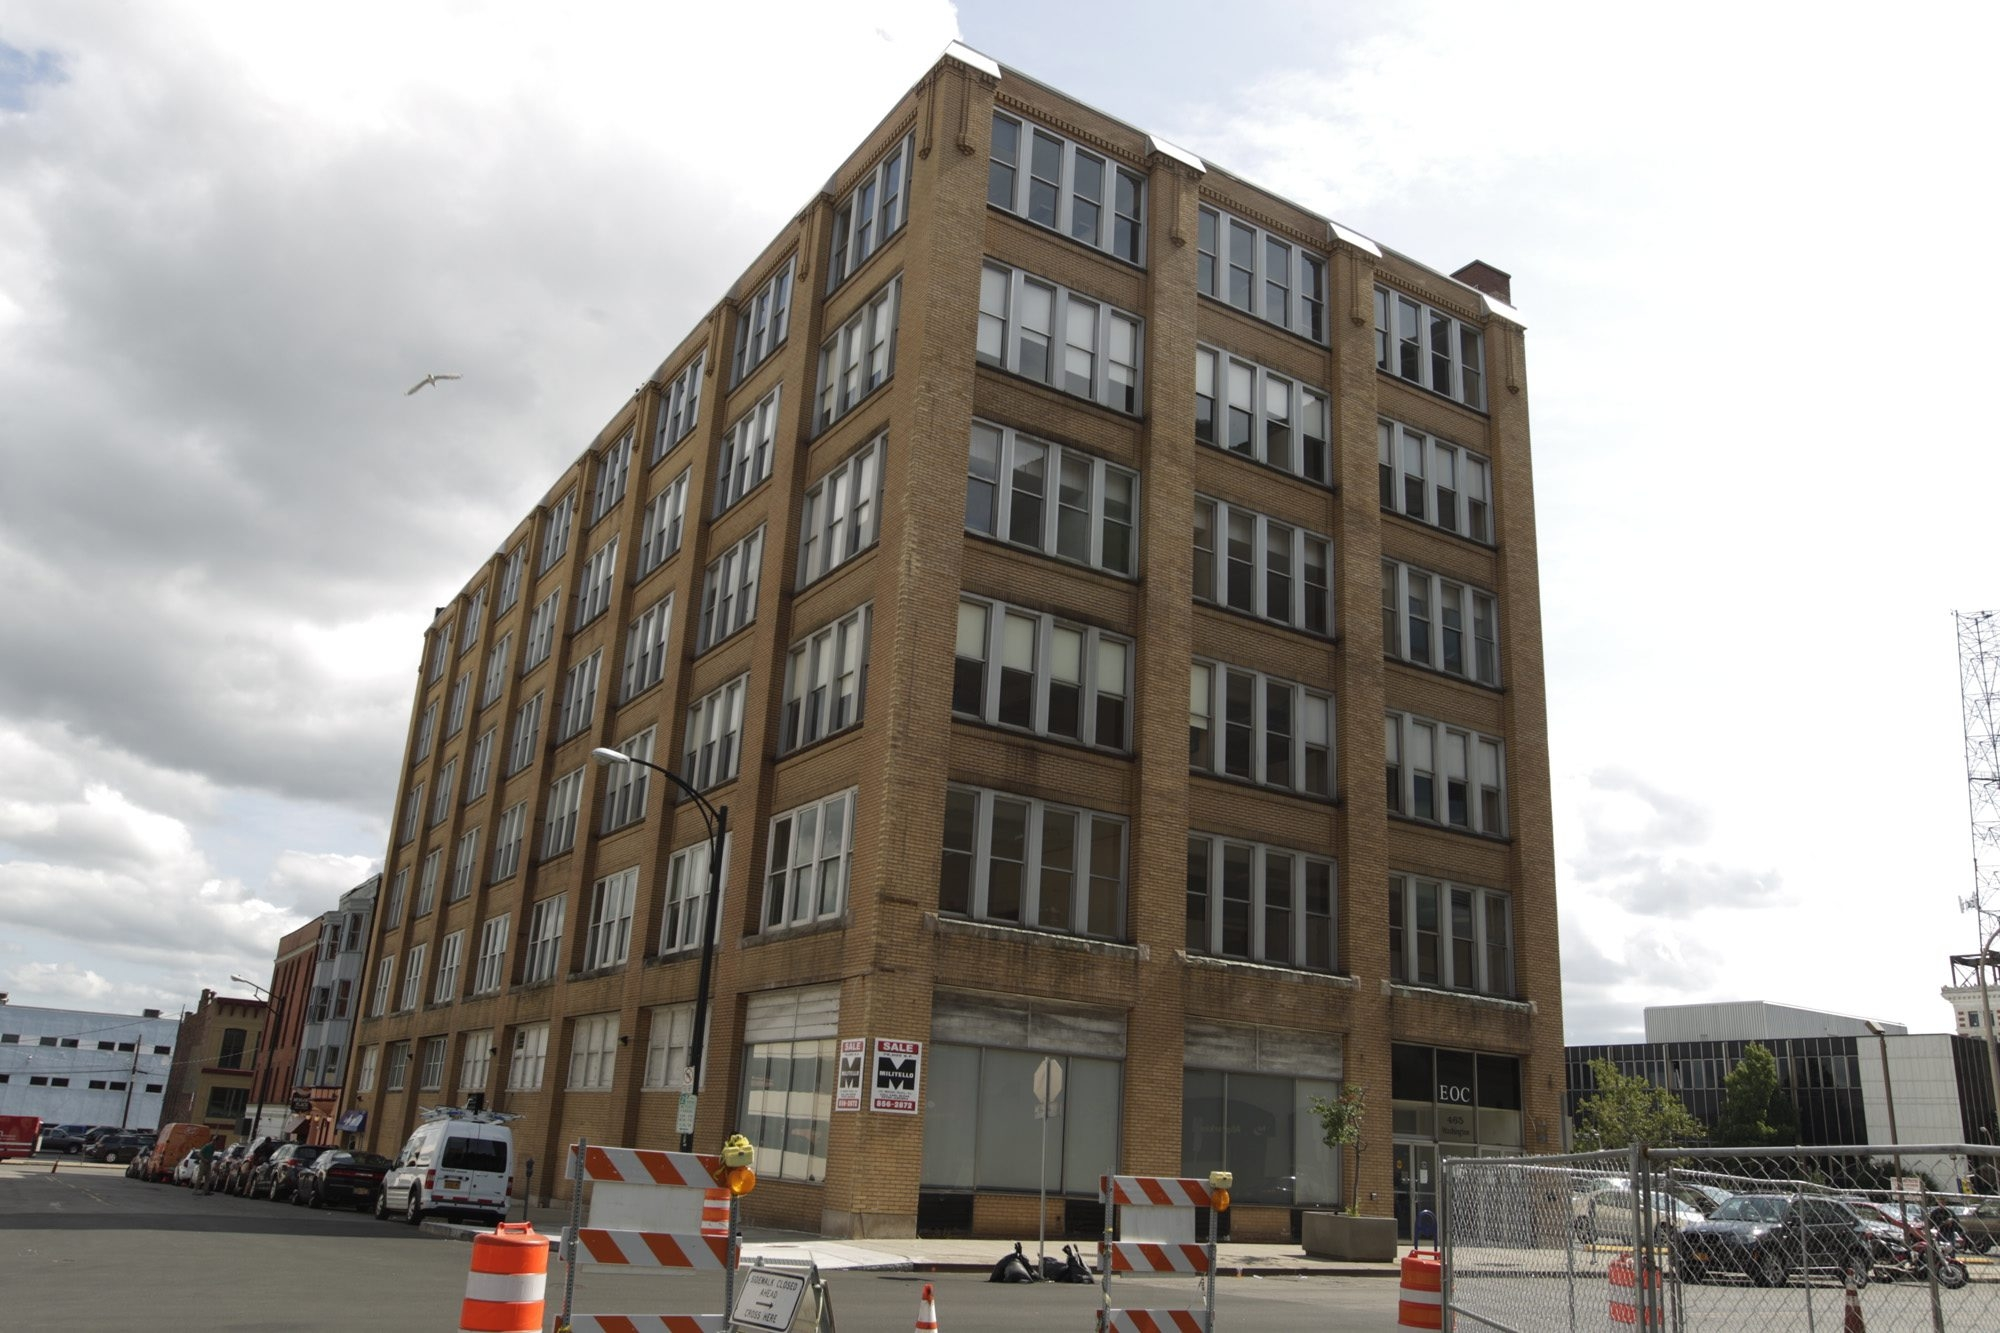 Ciminelli Real Estate Corp. is renovating at 465 Washington St. at East Mohawk Street into The Sinclair, which will comprise 45 apartments.